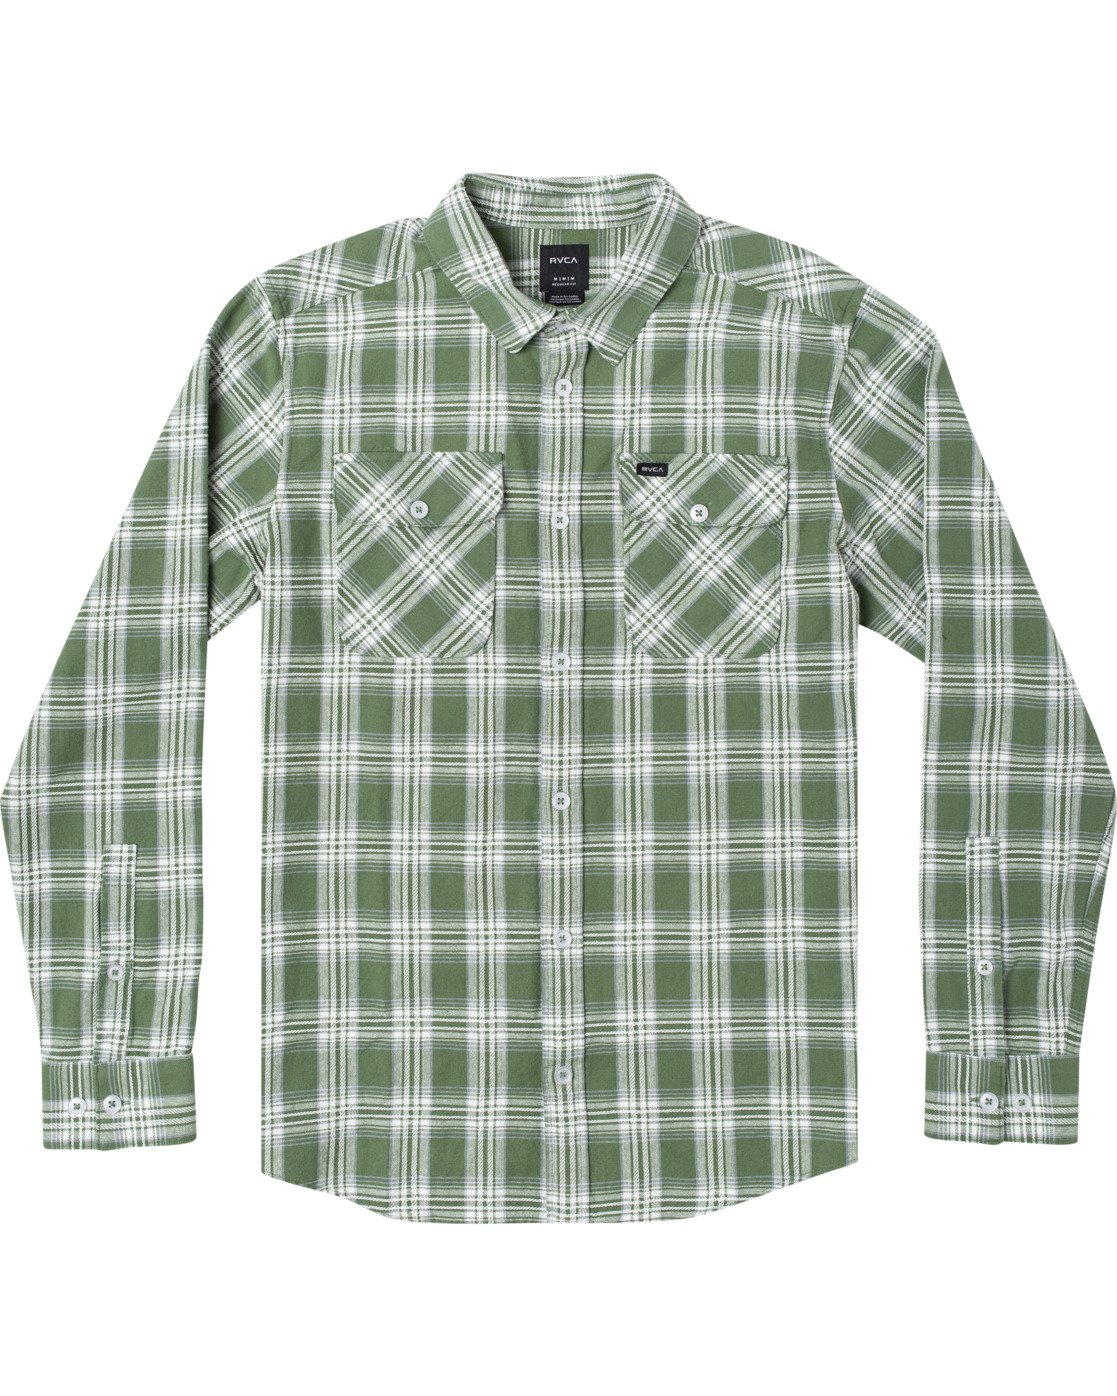 0 THATLL WORK FLANNEL LONG SLEEVE SHIRT Multicolor M5993RTW RVCA